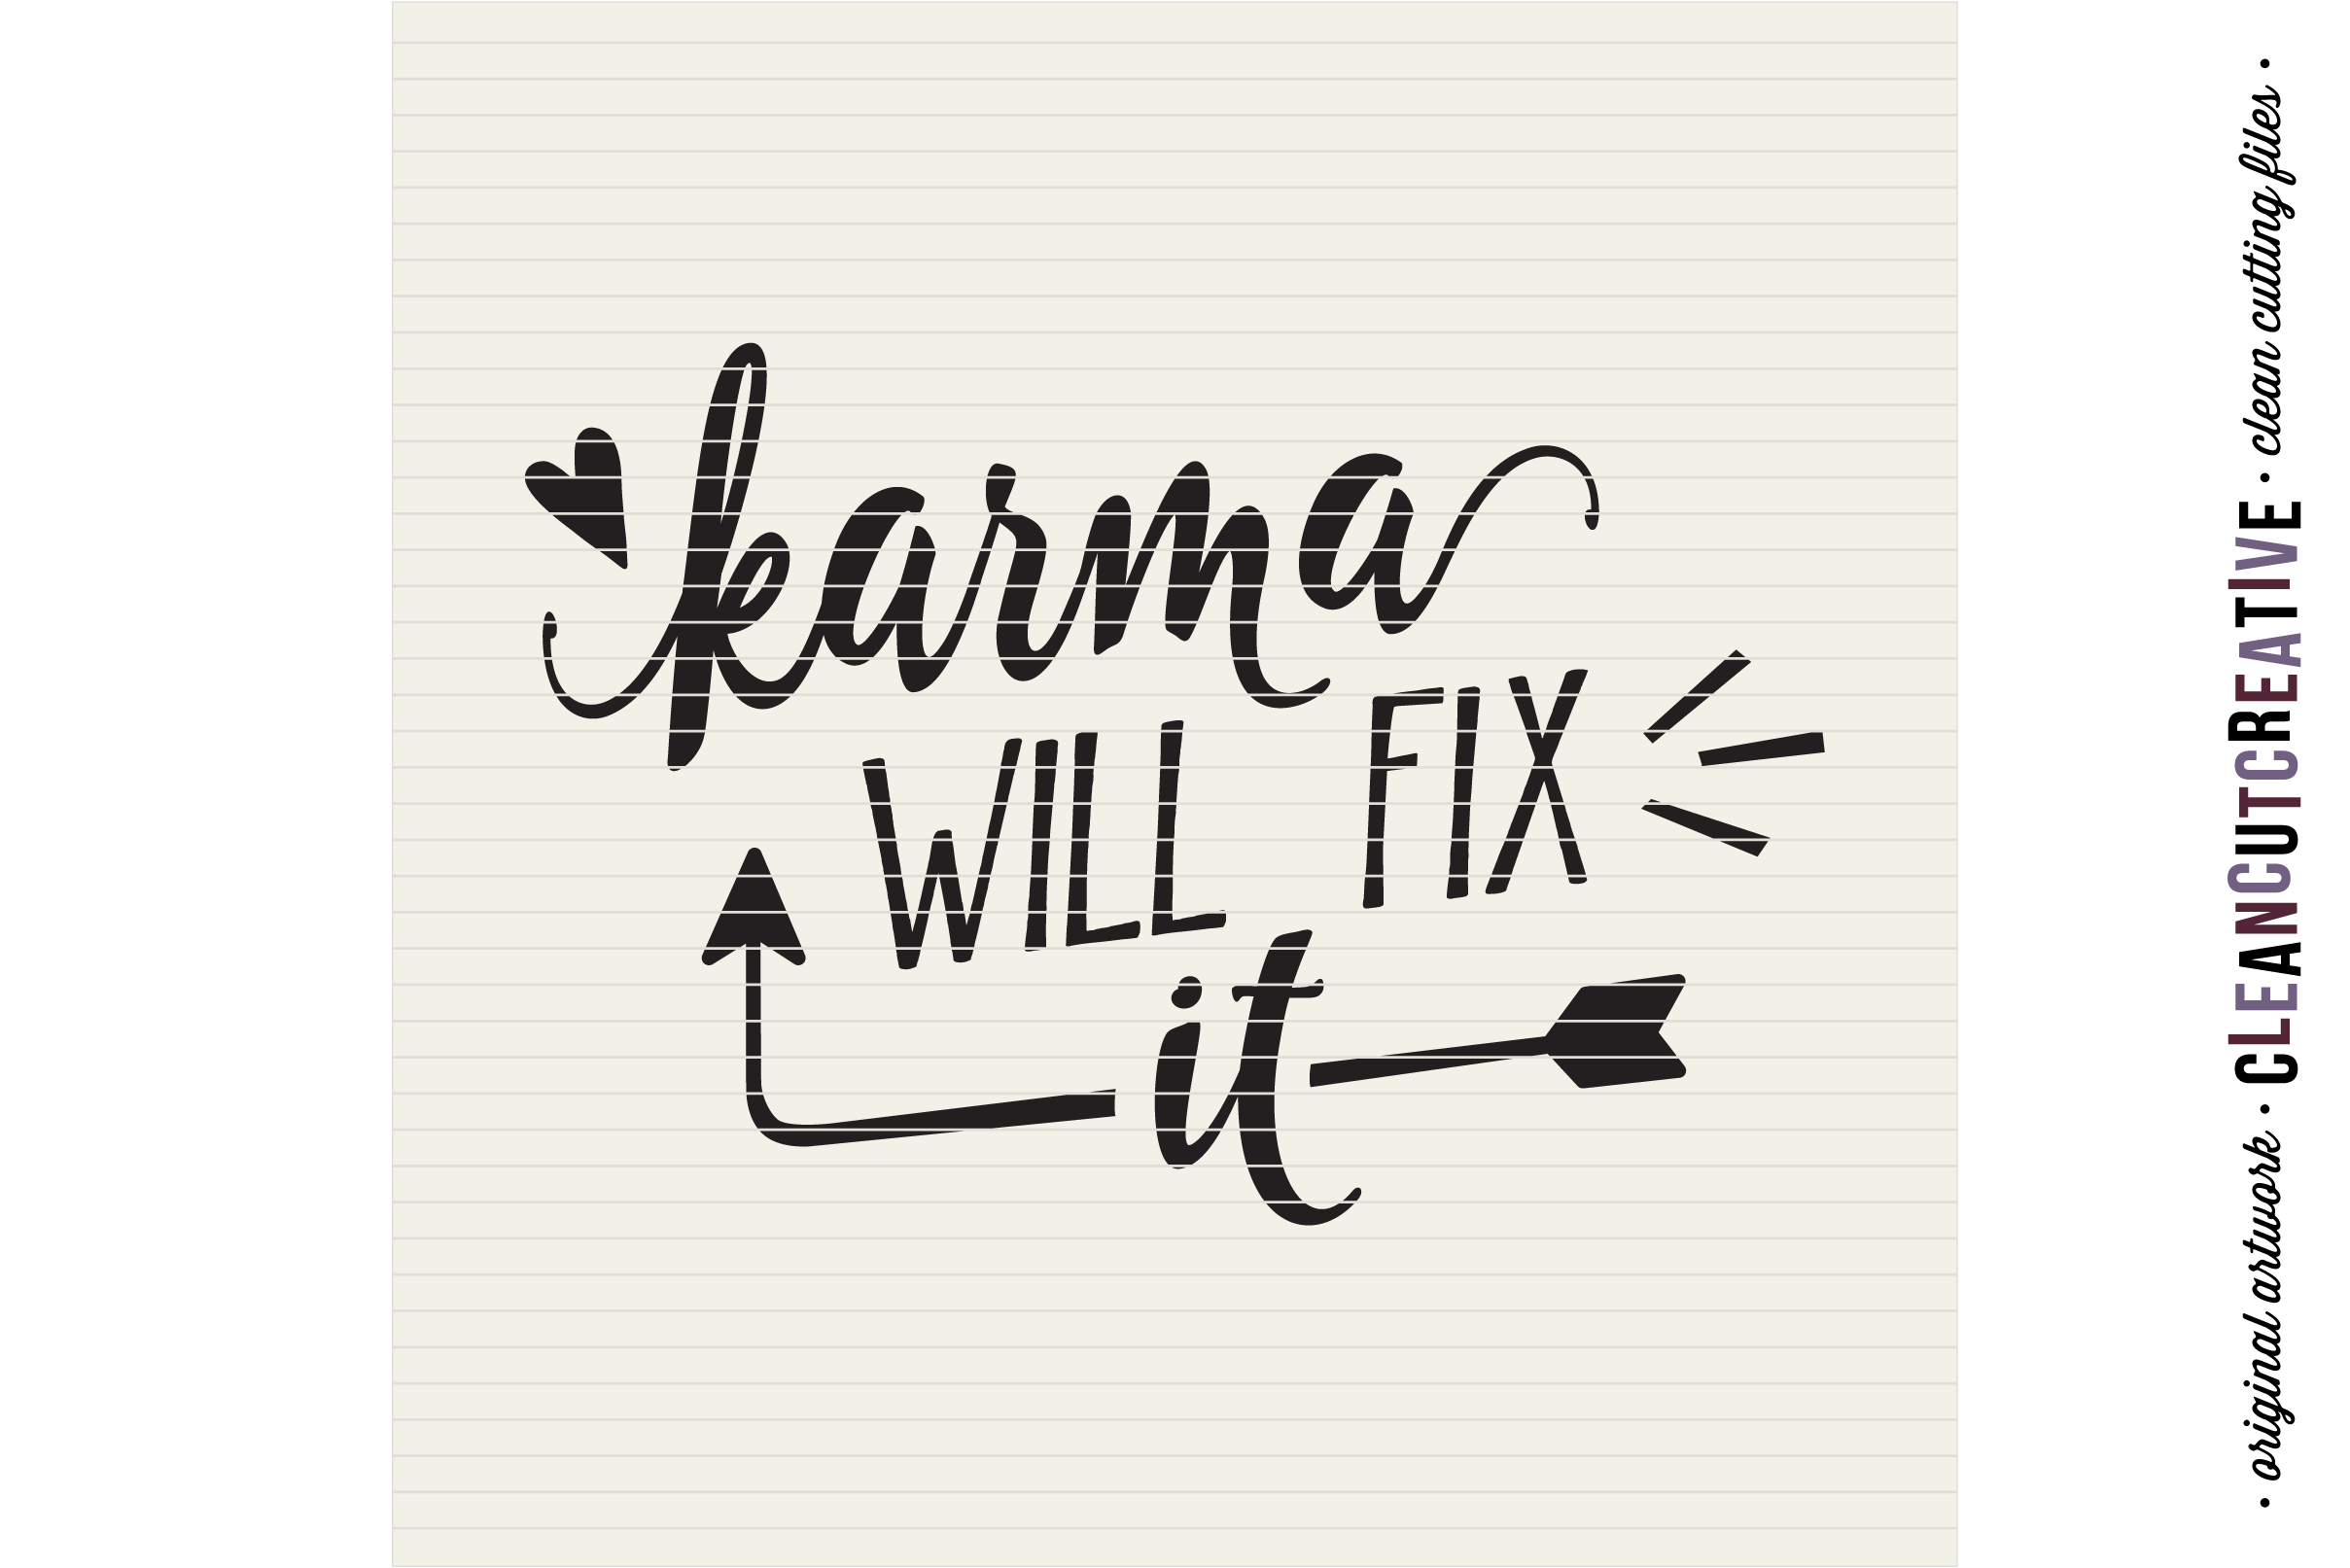 Funny Quote - Karma Will Fix It! - SVG DXF EPS PNG - cut file cutting file clipart - Cricut & Silhouette - clean cutting files example image 2